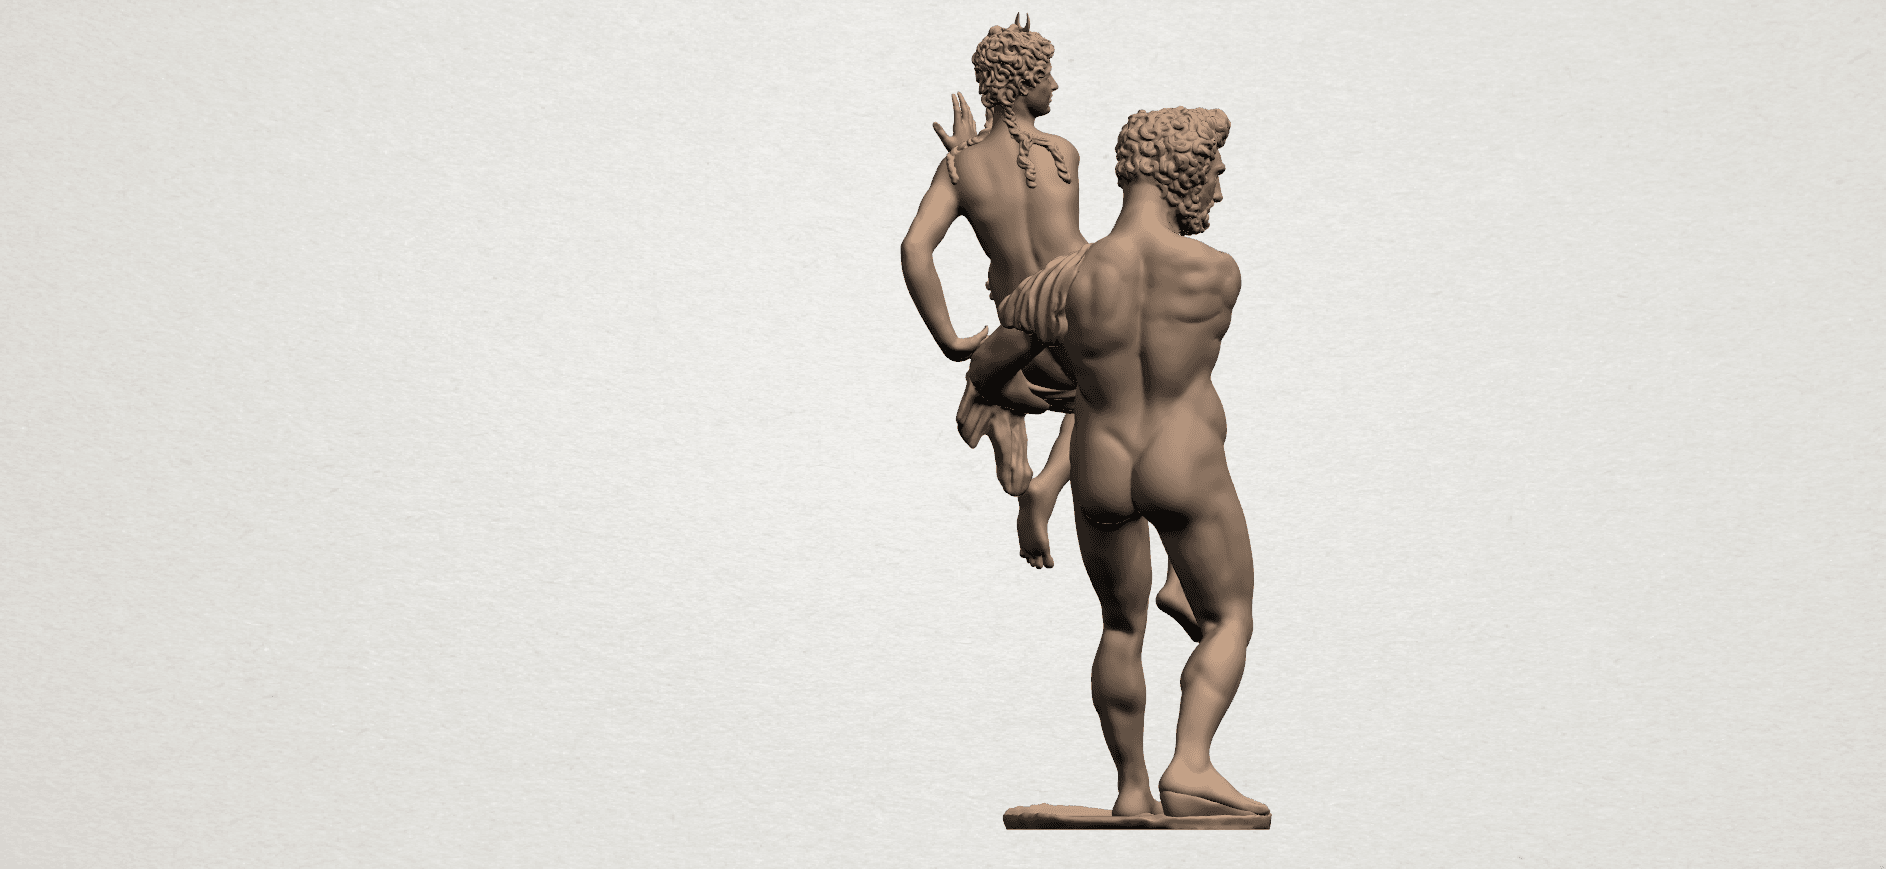 Naked Couple (iv) A05.png Download free STL file Naked Couple 04 • 3D printable model, GeorgesNikkei